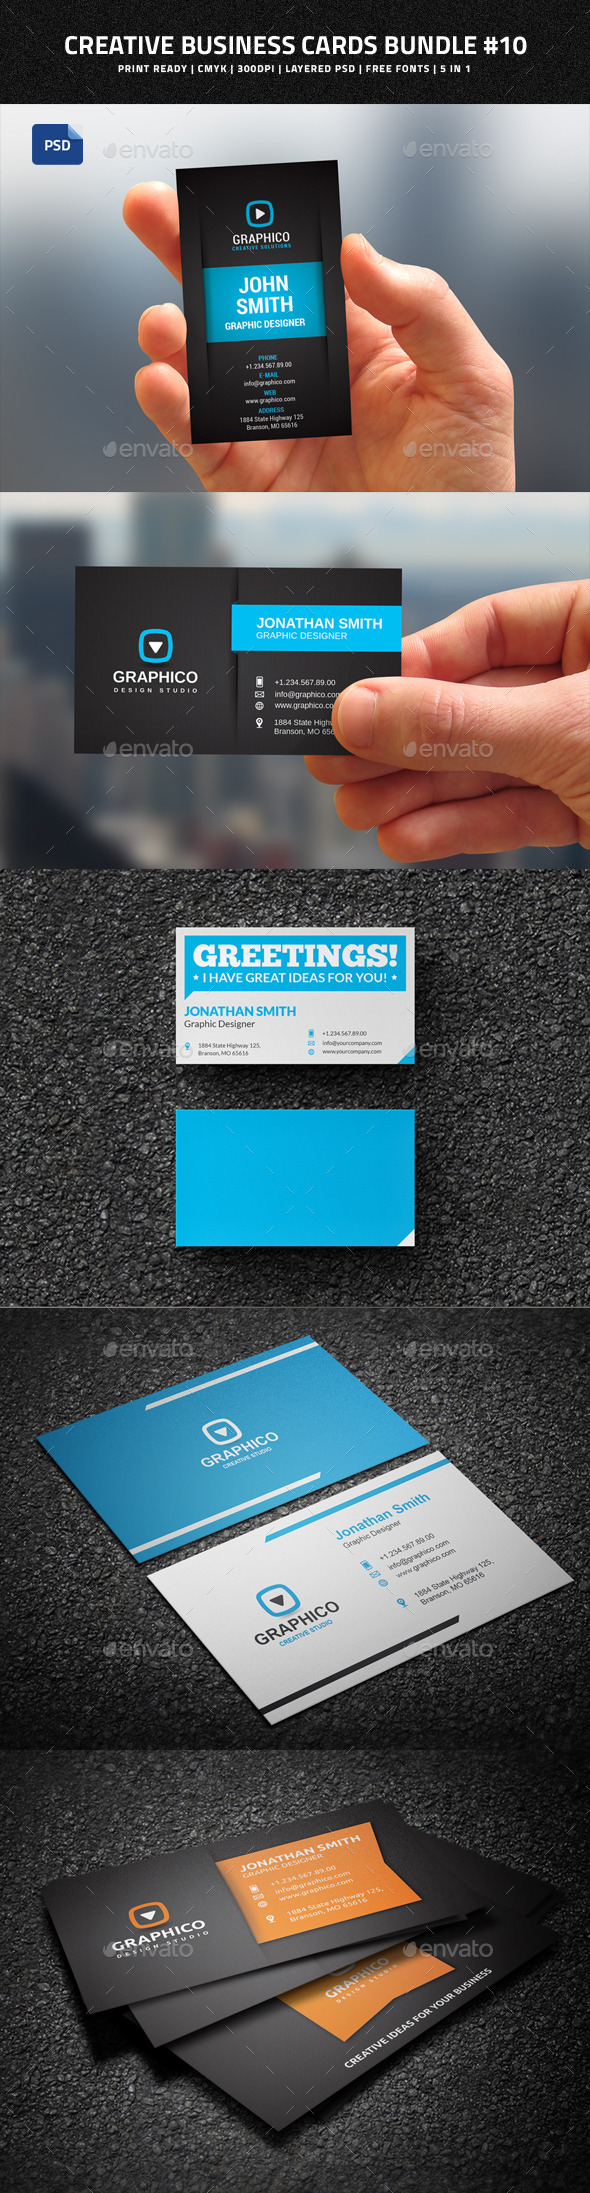 Creative Business Cards Bundle #10